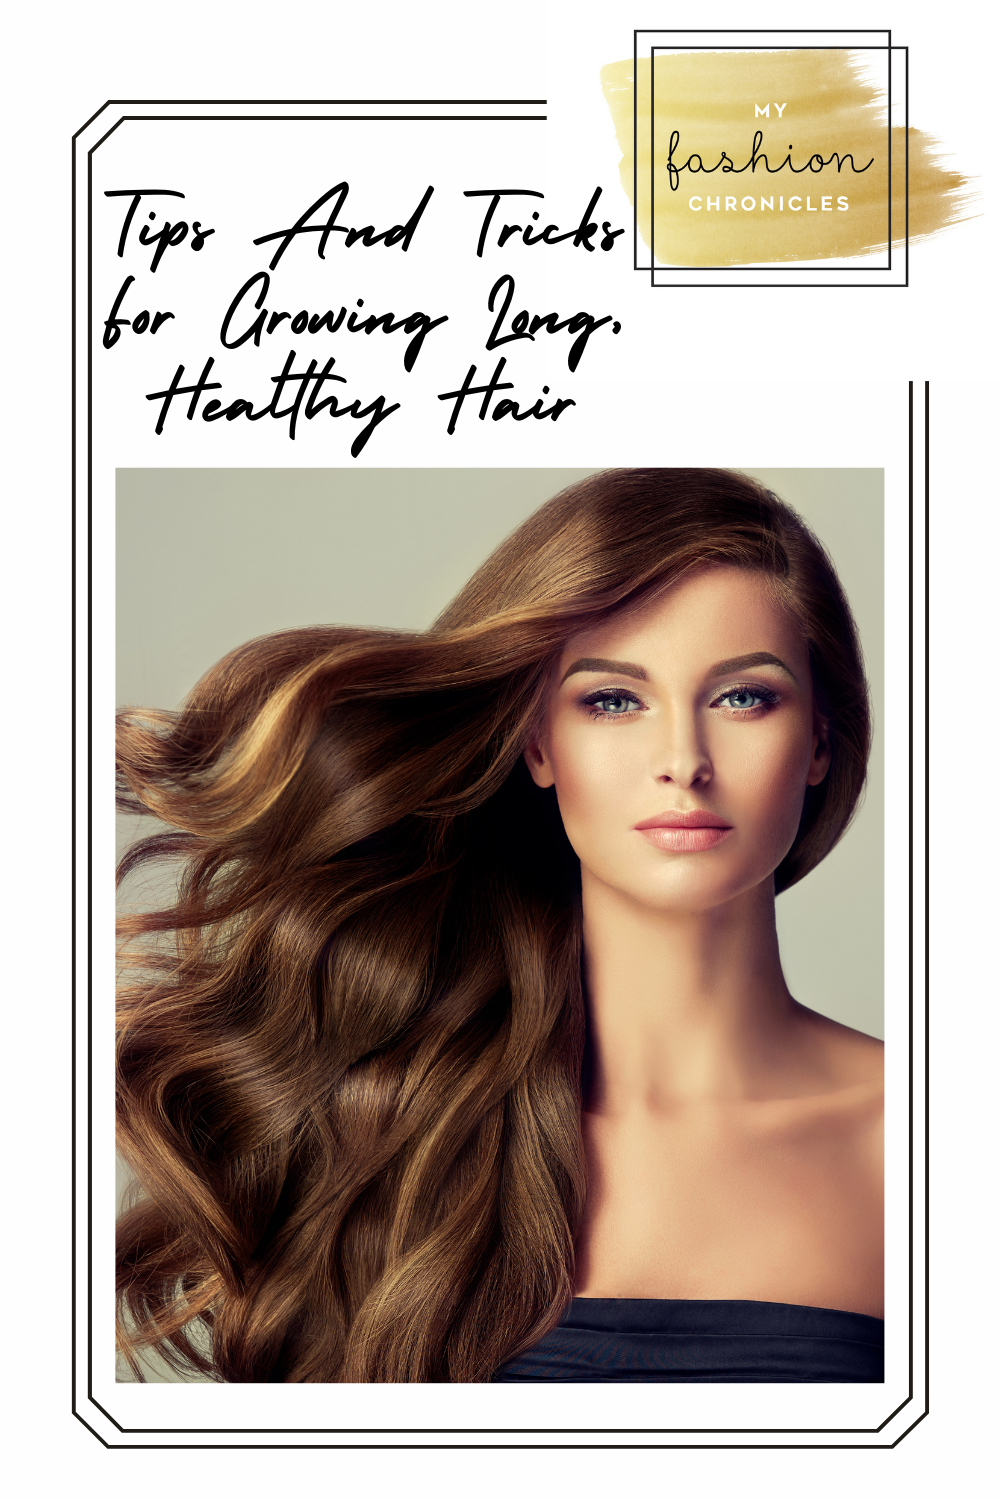 Myfashionchronicles.com is the place to go for advice that will have you looking your best 24/7! Don't miss out on the best trends and styles. Vamp up a great outfit with healthy hair! Check out these tips for growing your longest, healthiest hair ever!